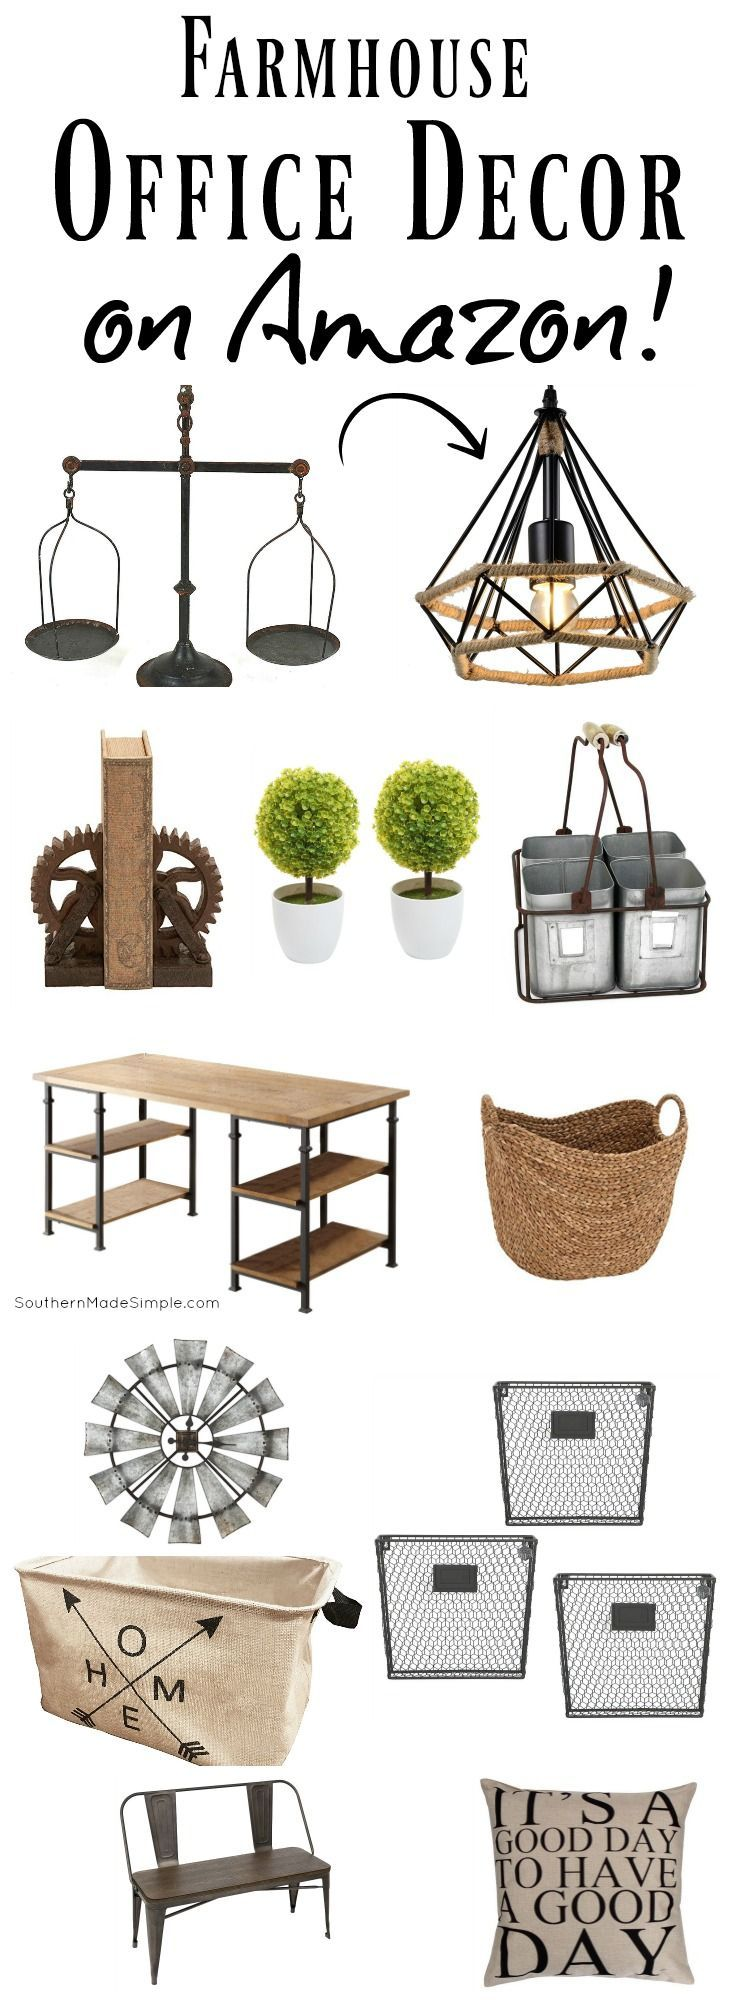 Farmhouse Fixer-Upper inspired finds for the office...and all available on Amazon! #farmhouse